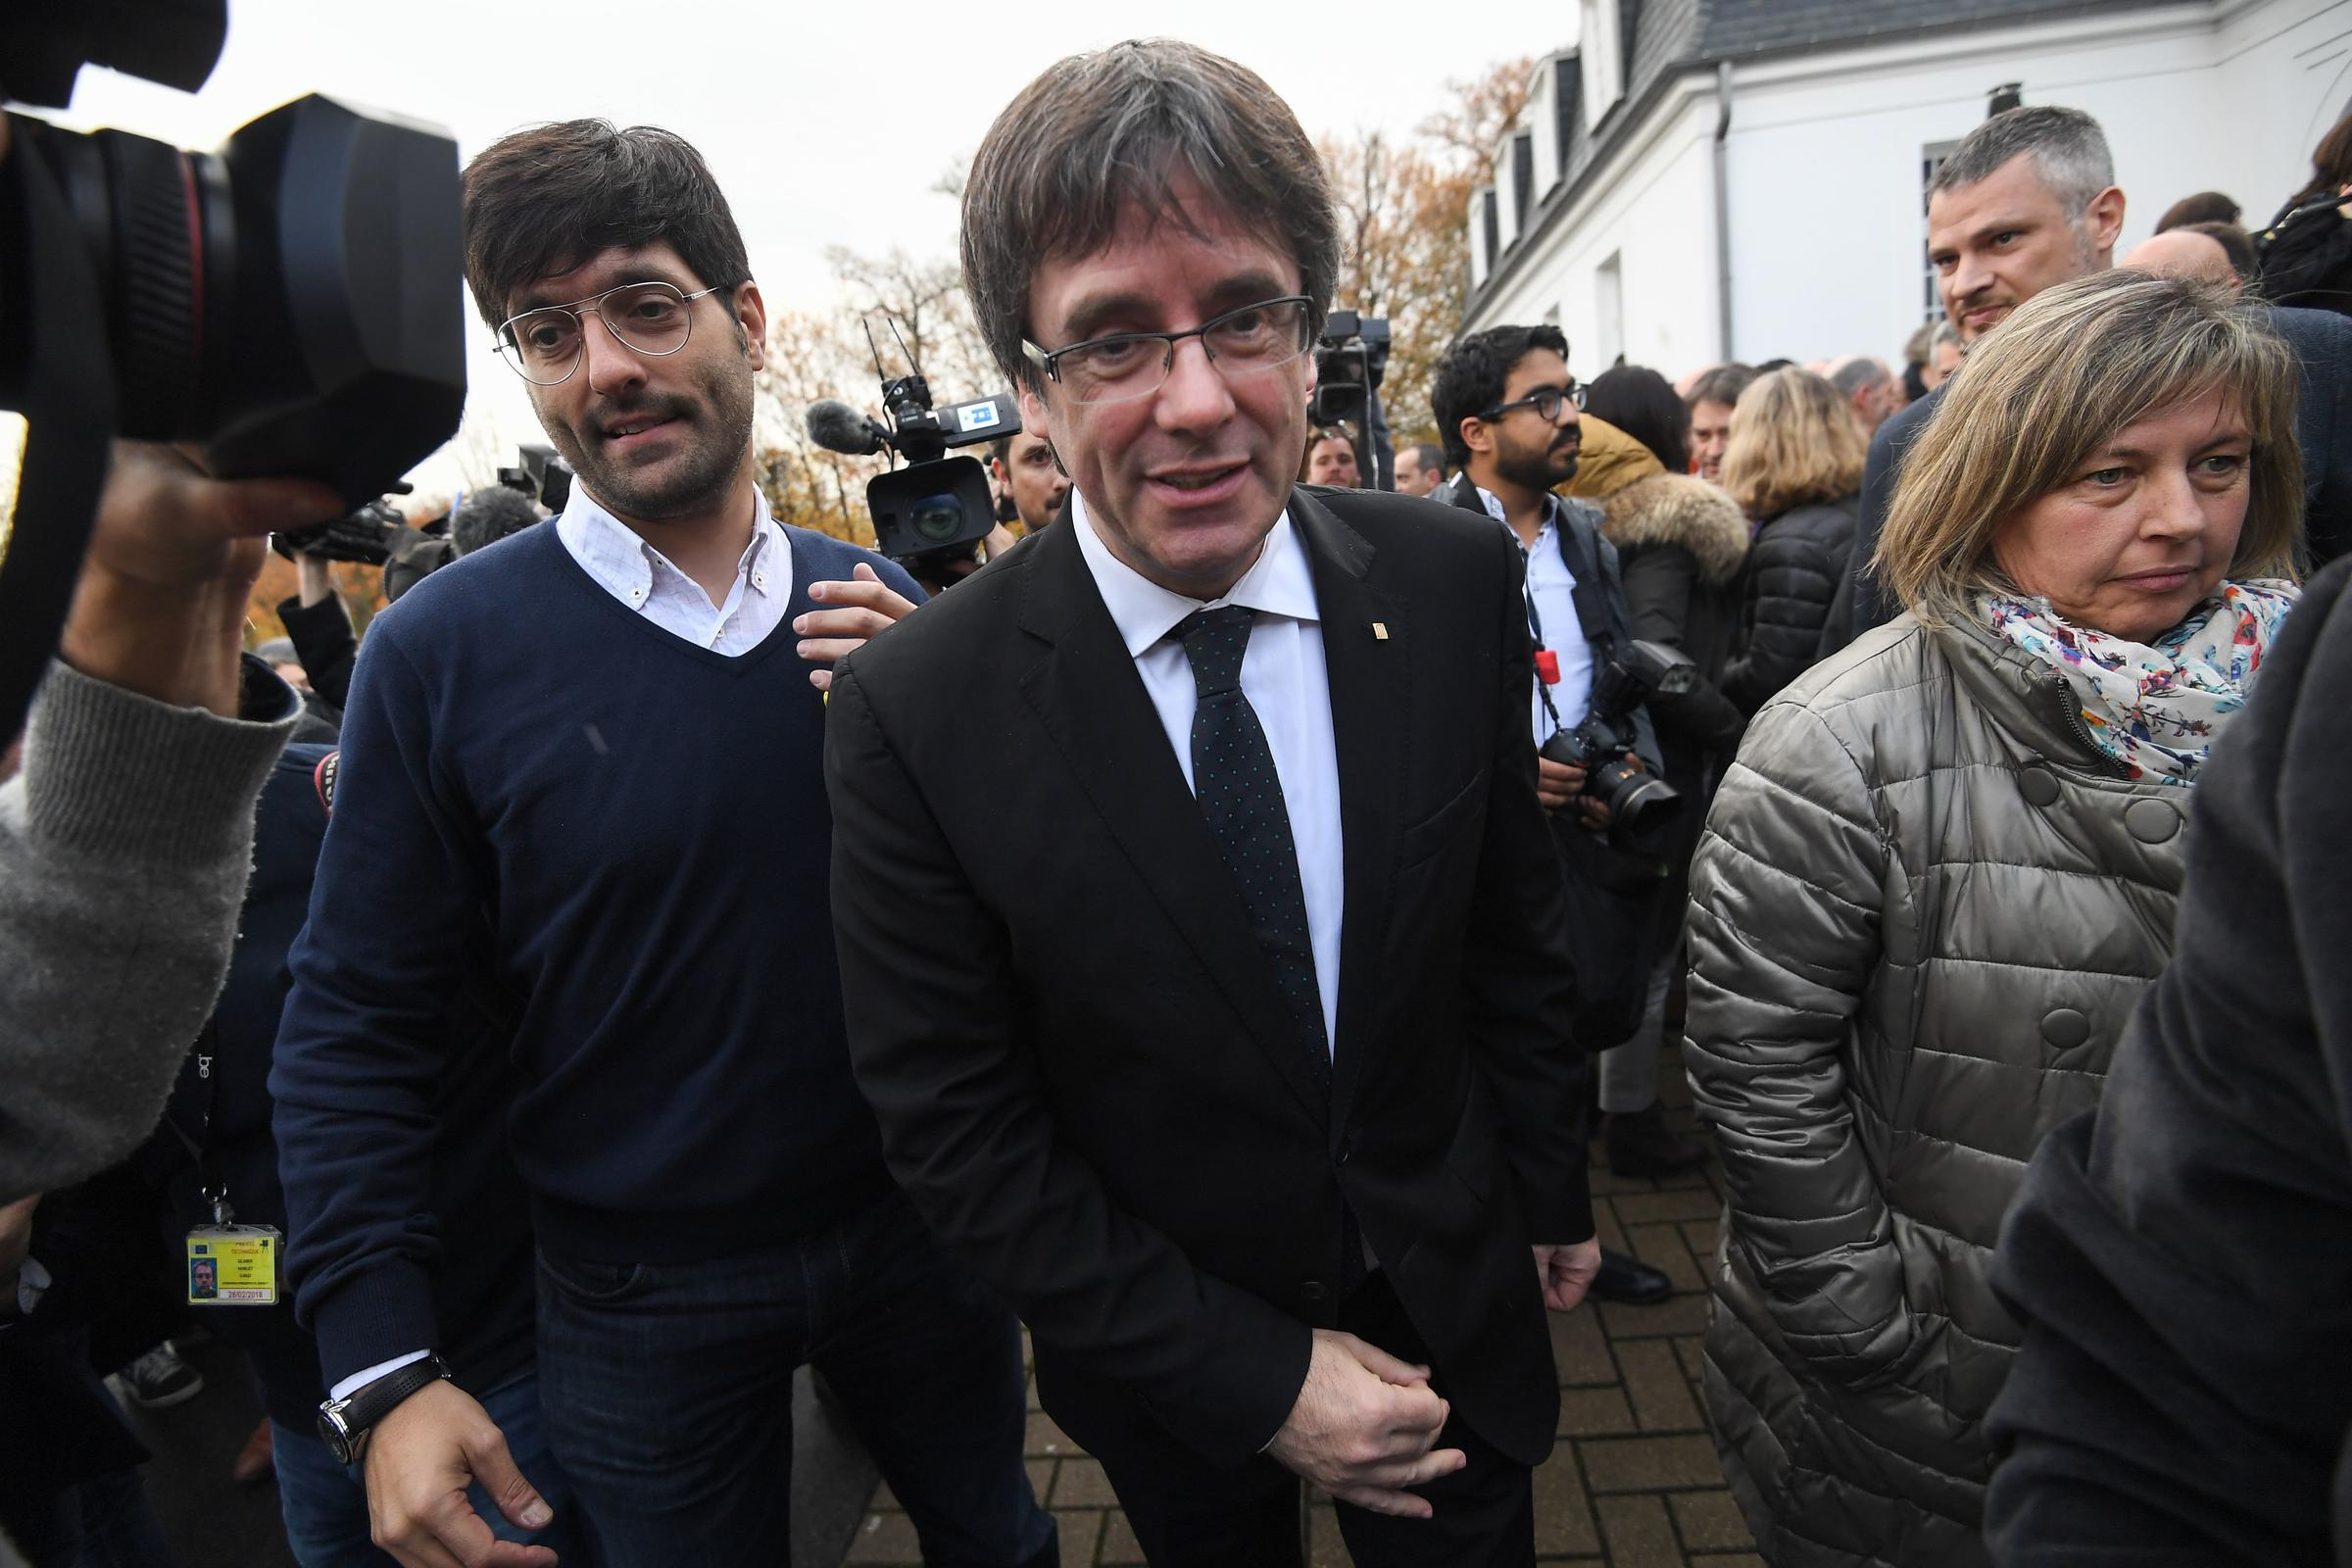 Warrant for Carles Puigdemont, Catalan Separatist, Is Dropped